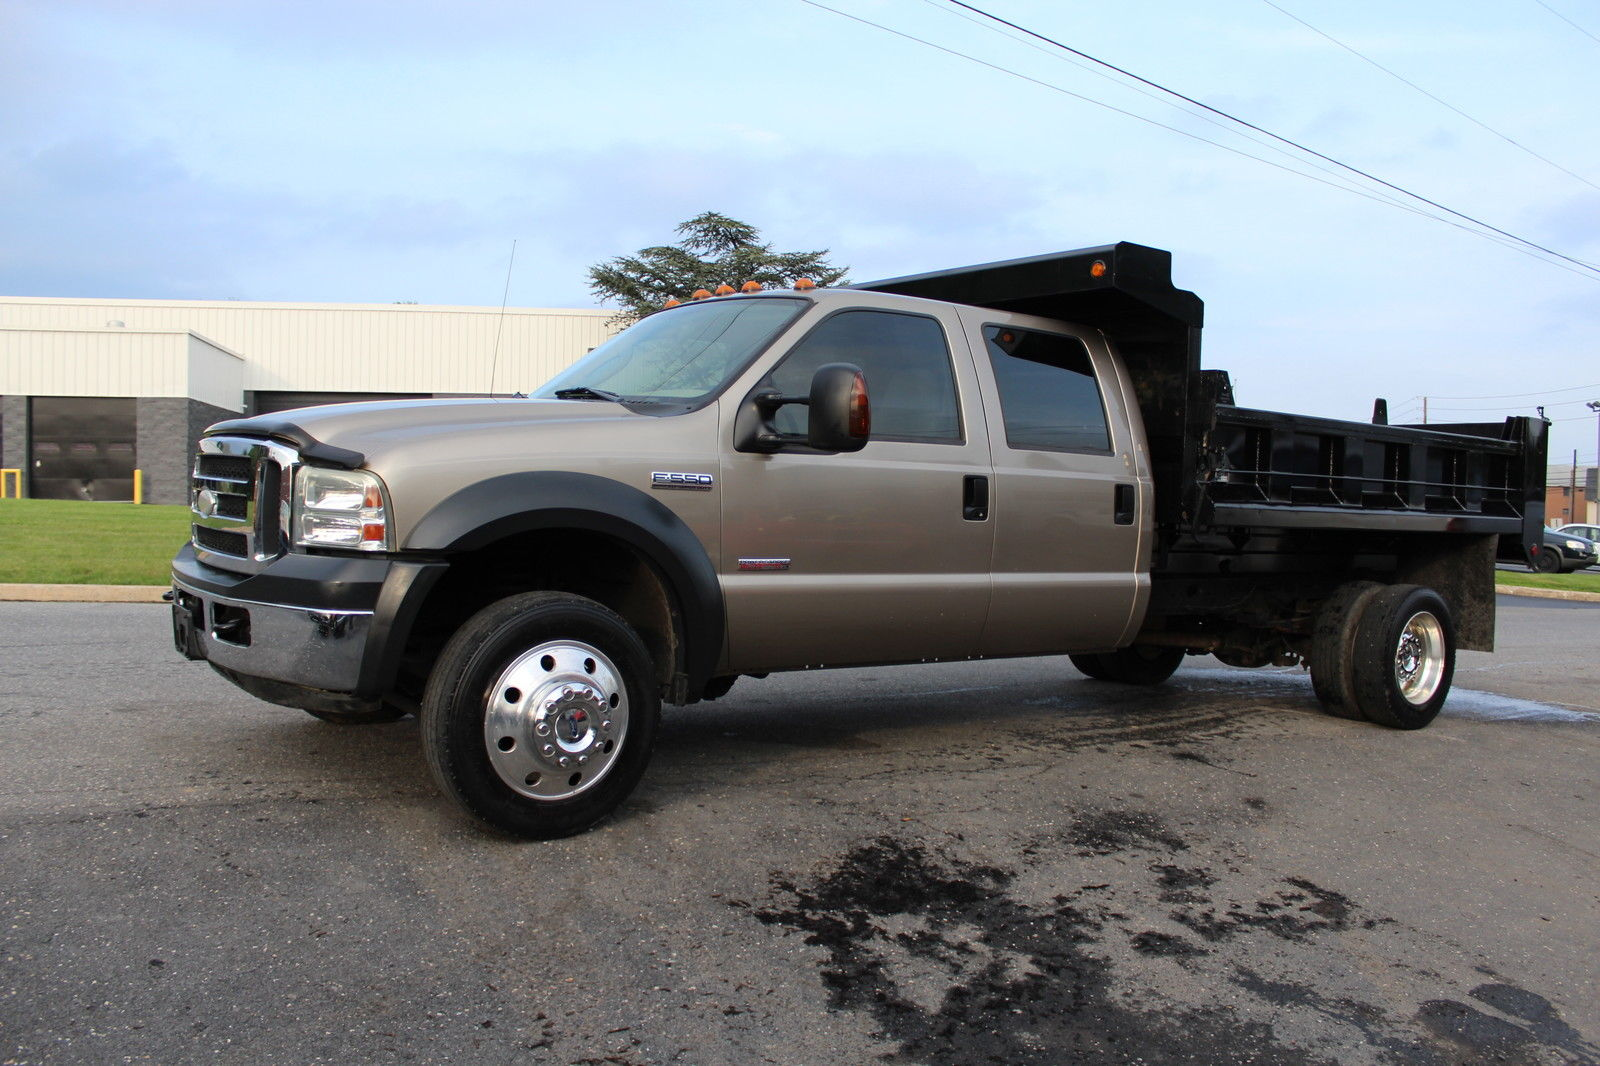 F350 Flatbed For Sale >> 2006 Ford f 550 Crewcab with Brand new dump body for sale